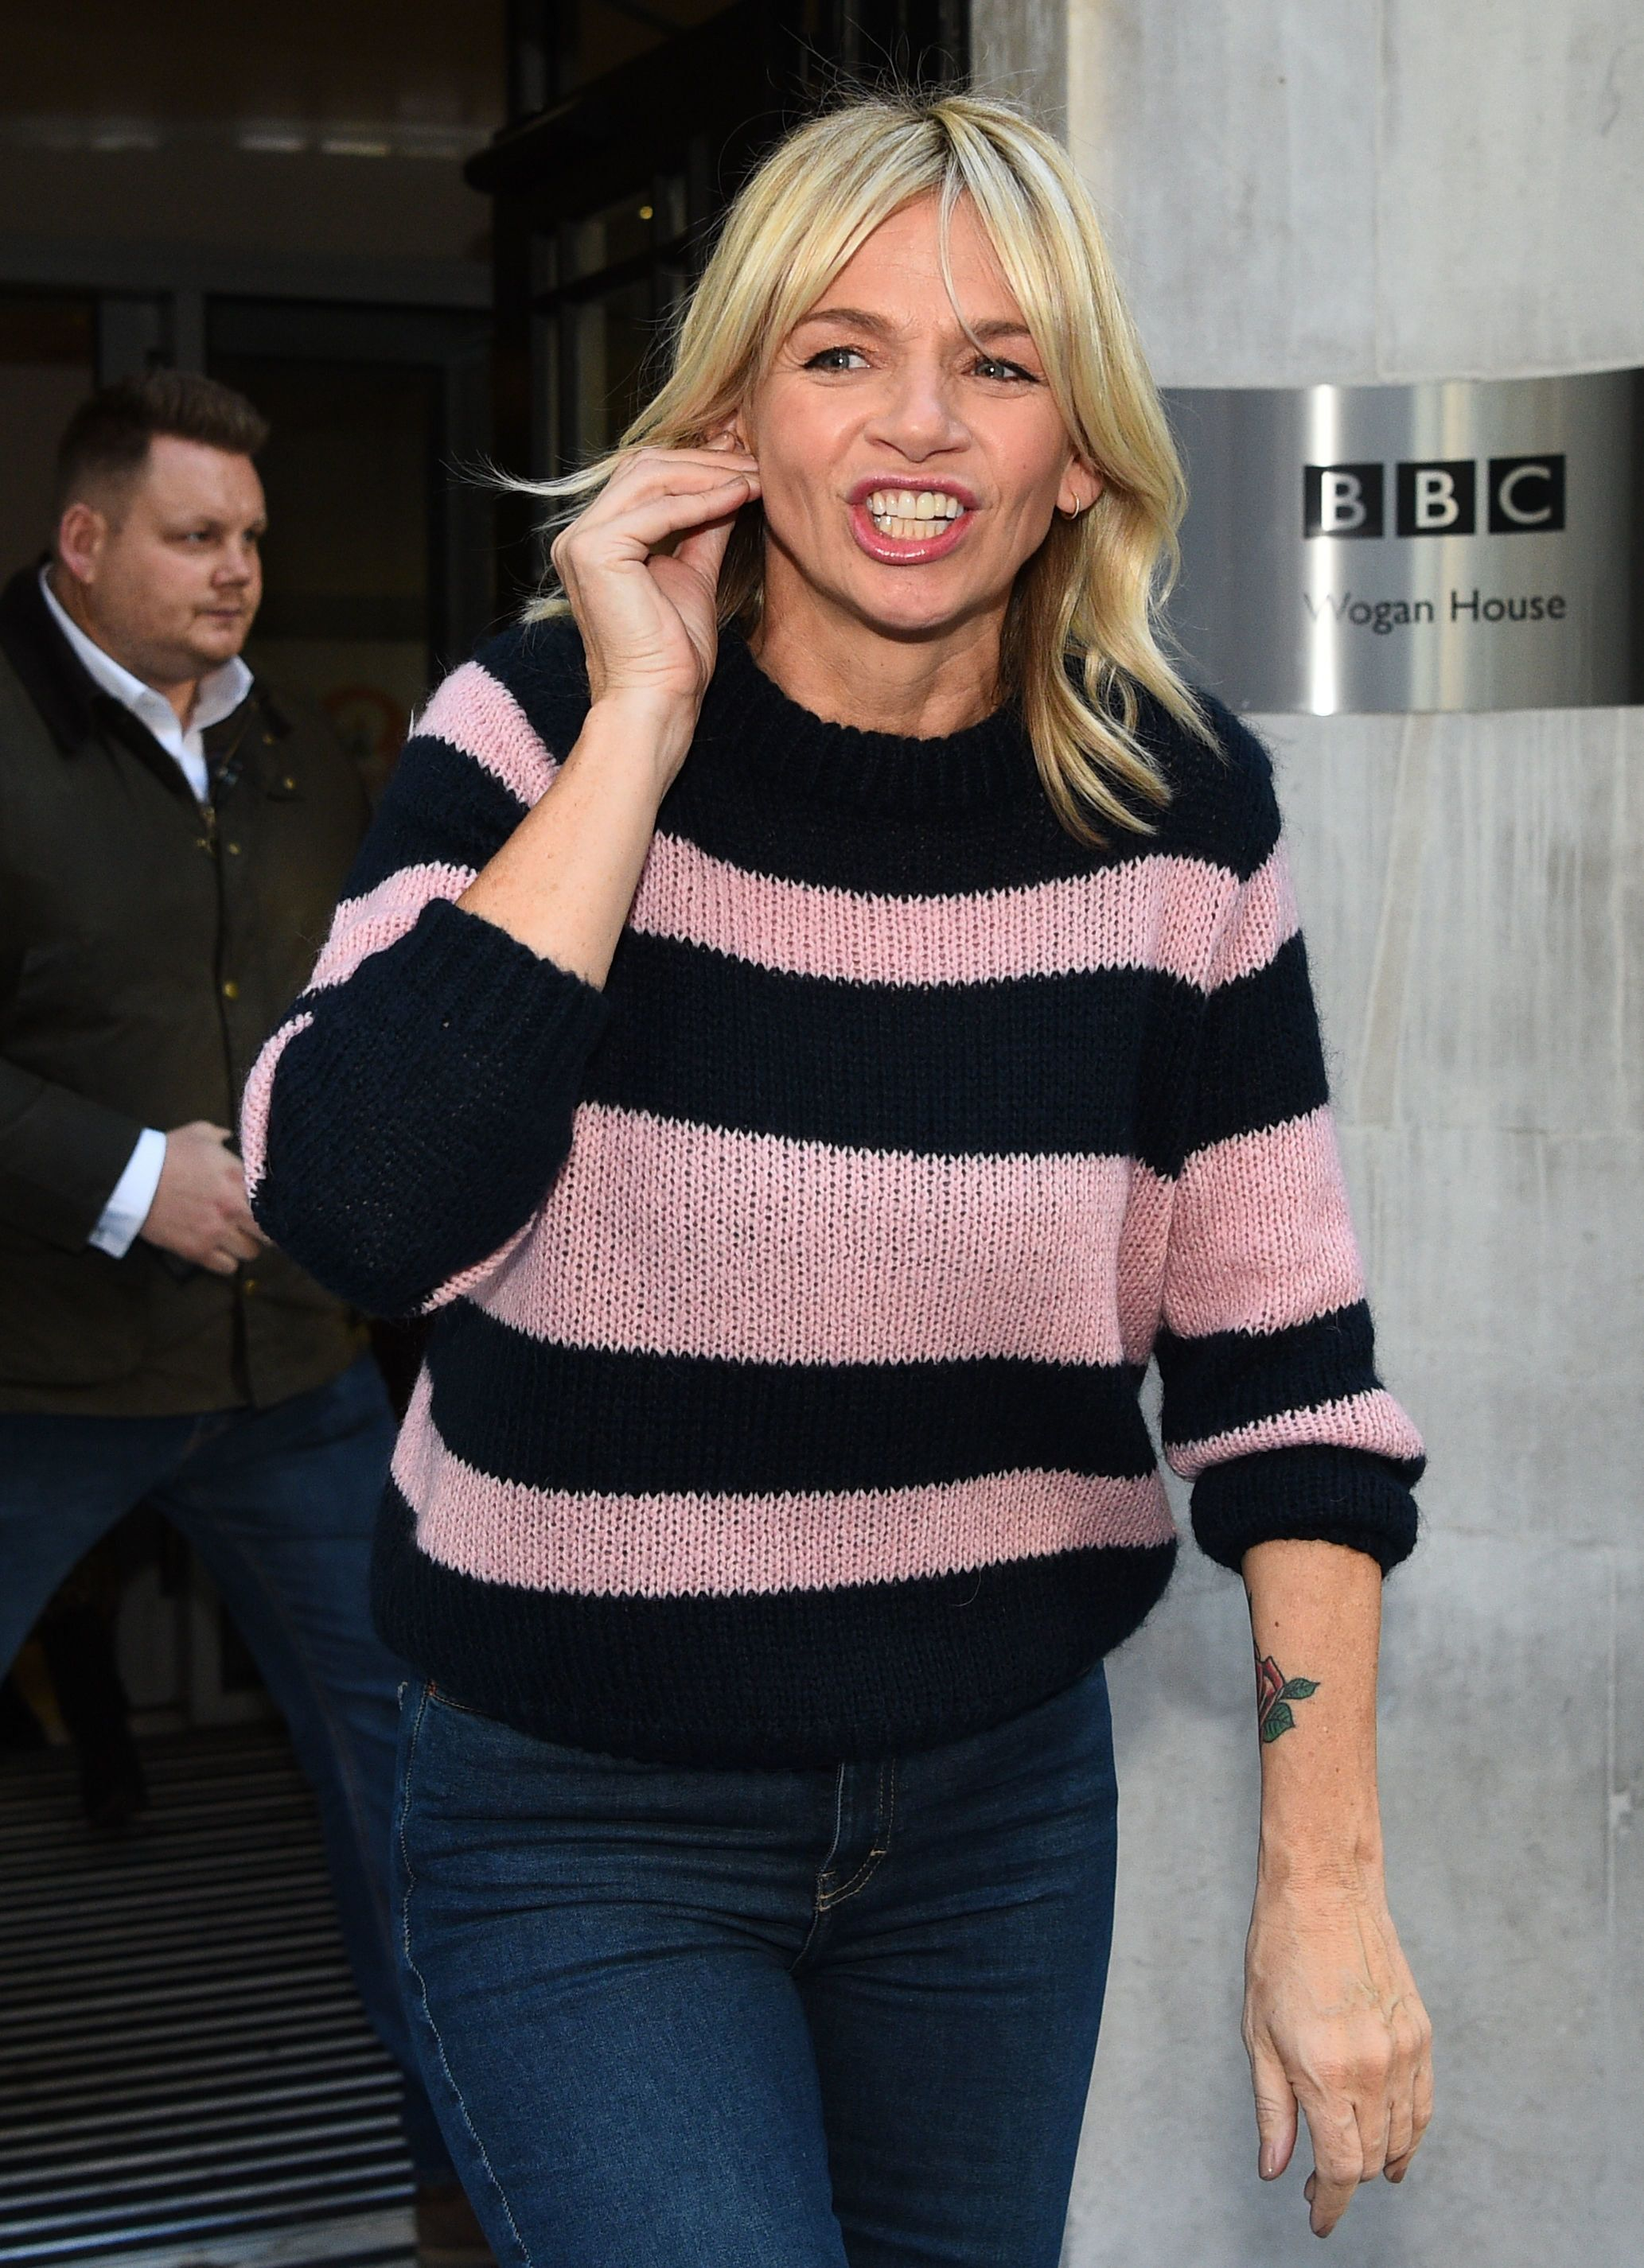 Zoe Ball 'Not Expecting' Same £1.6m Salary As Radio 2 Breakfast Show Predecessor Chris